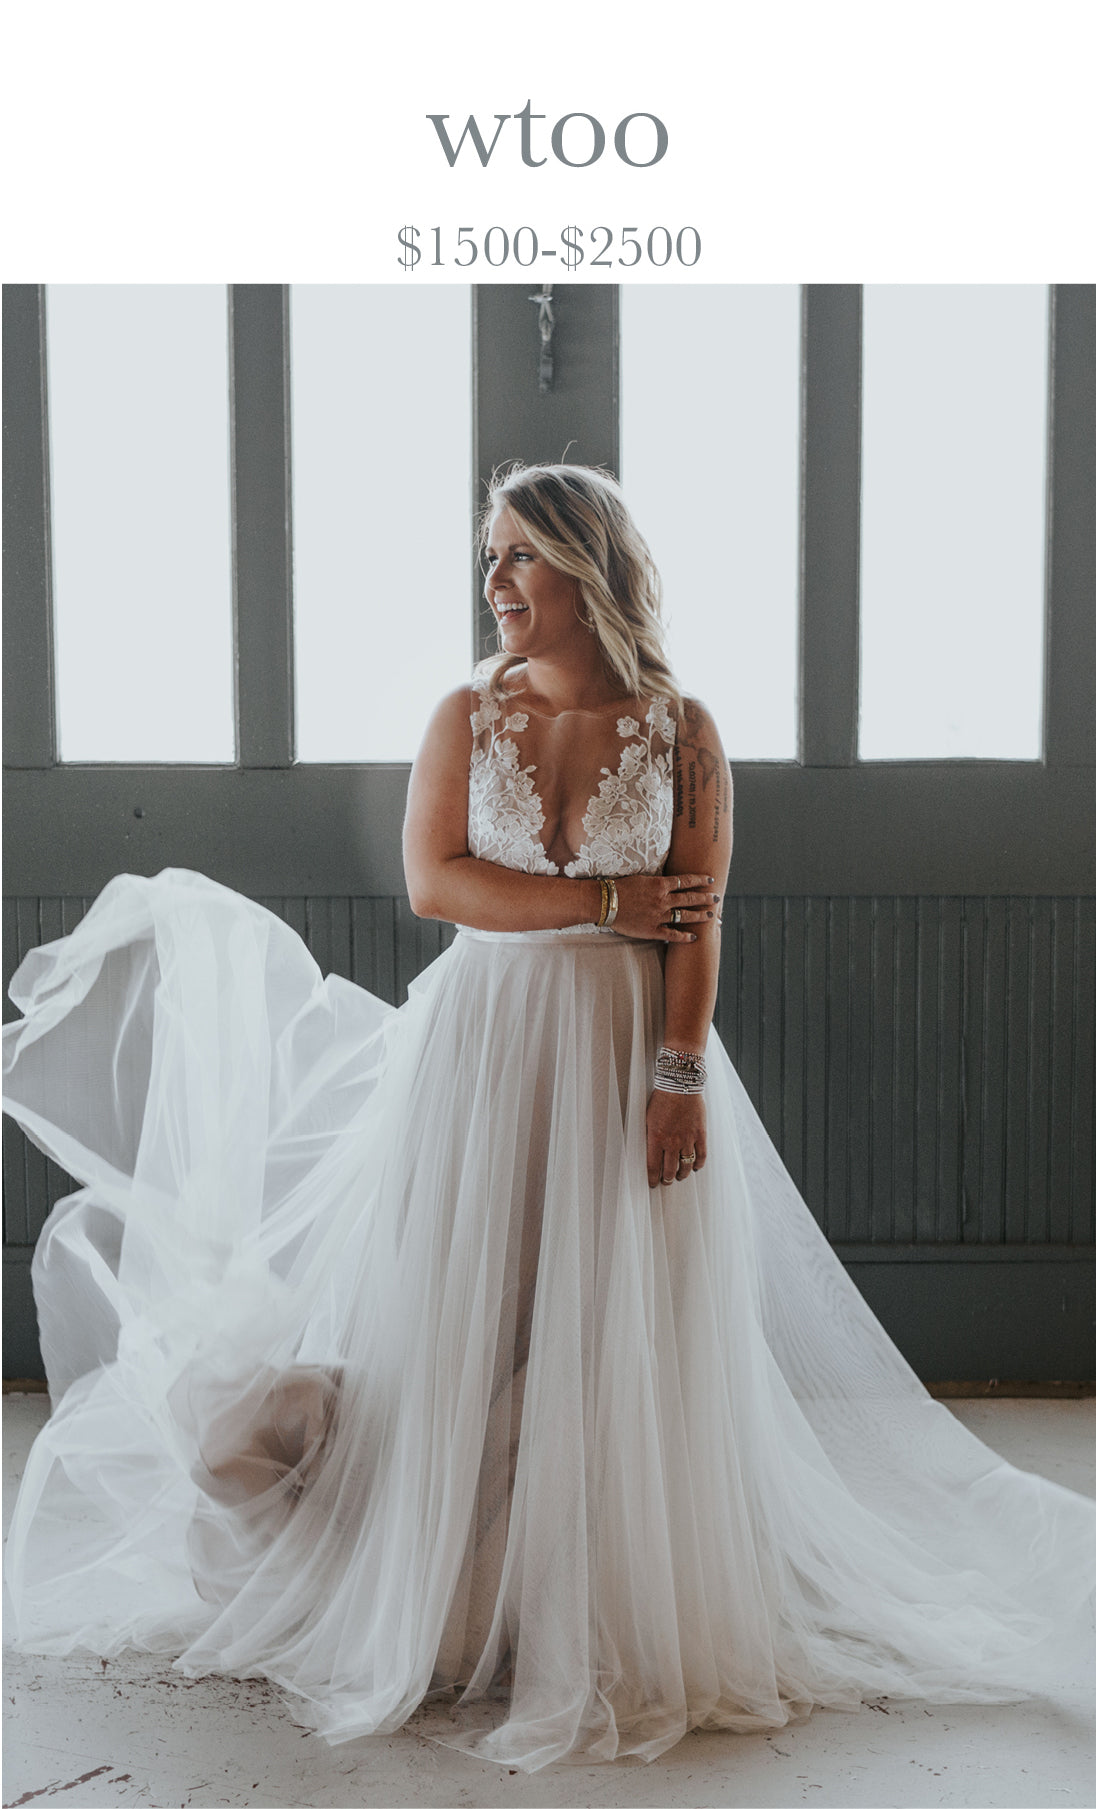 wtoo designer wedding gowns Denver